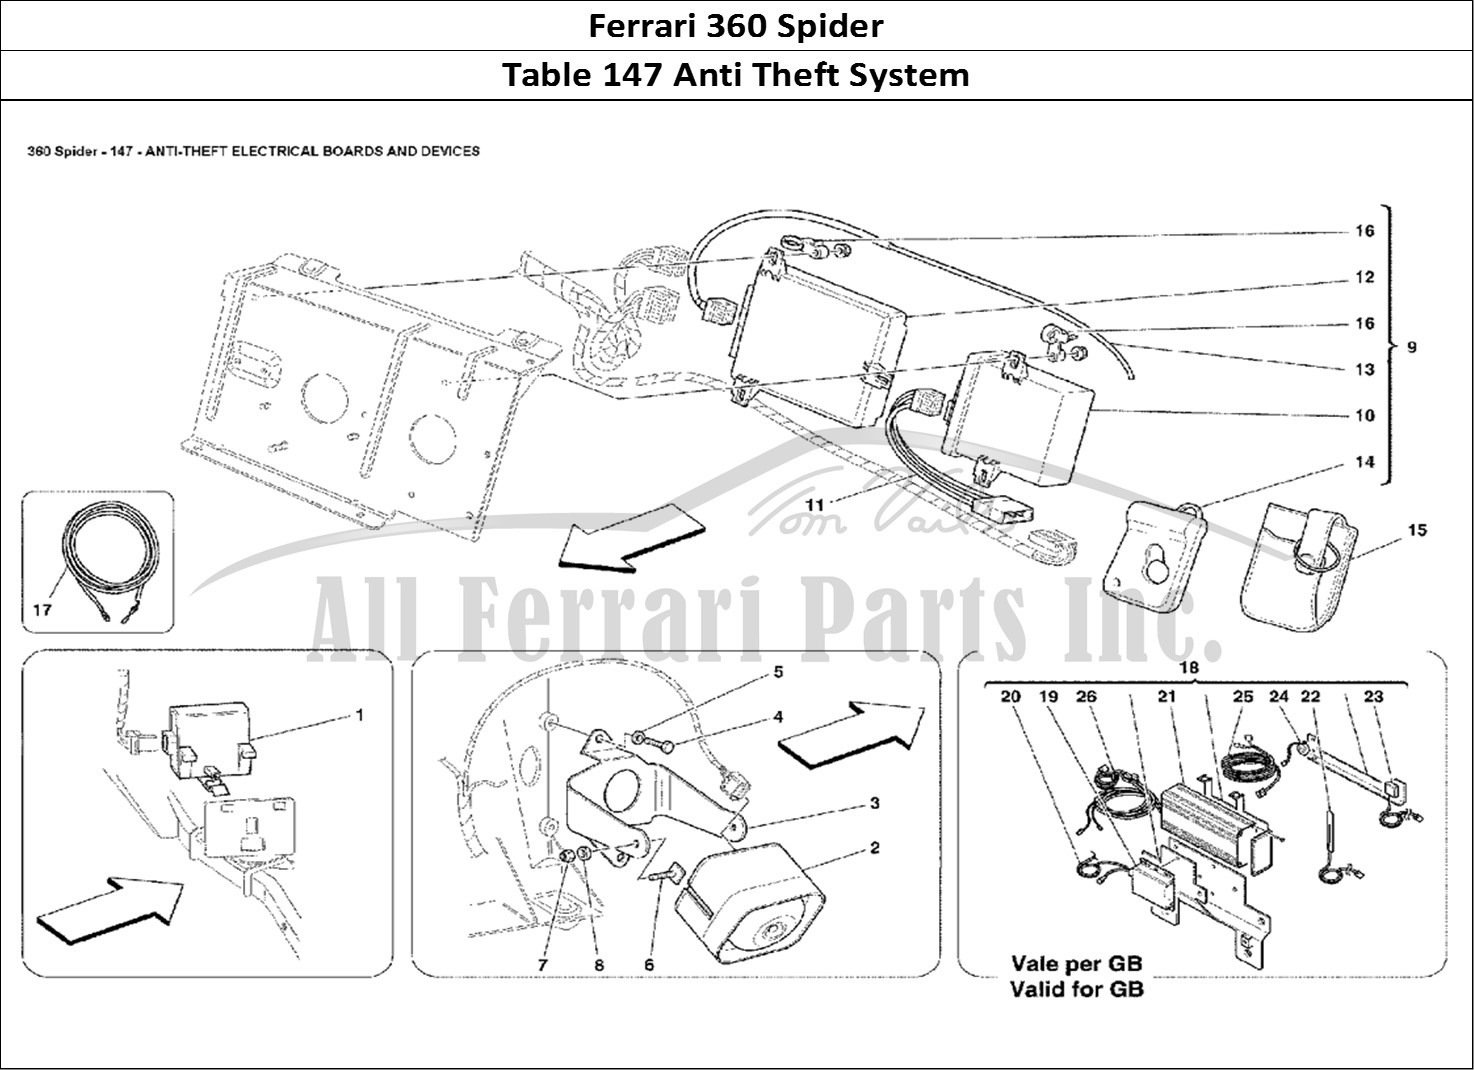 Buy Original Ferrari 360 Spider 147 Anti Theft System Ferrari Parts Spares Accessories Online